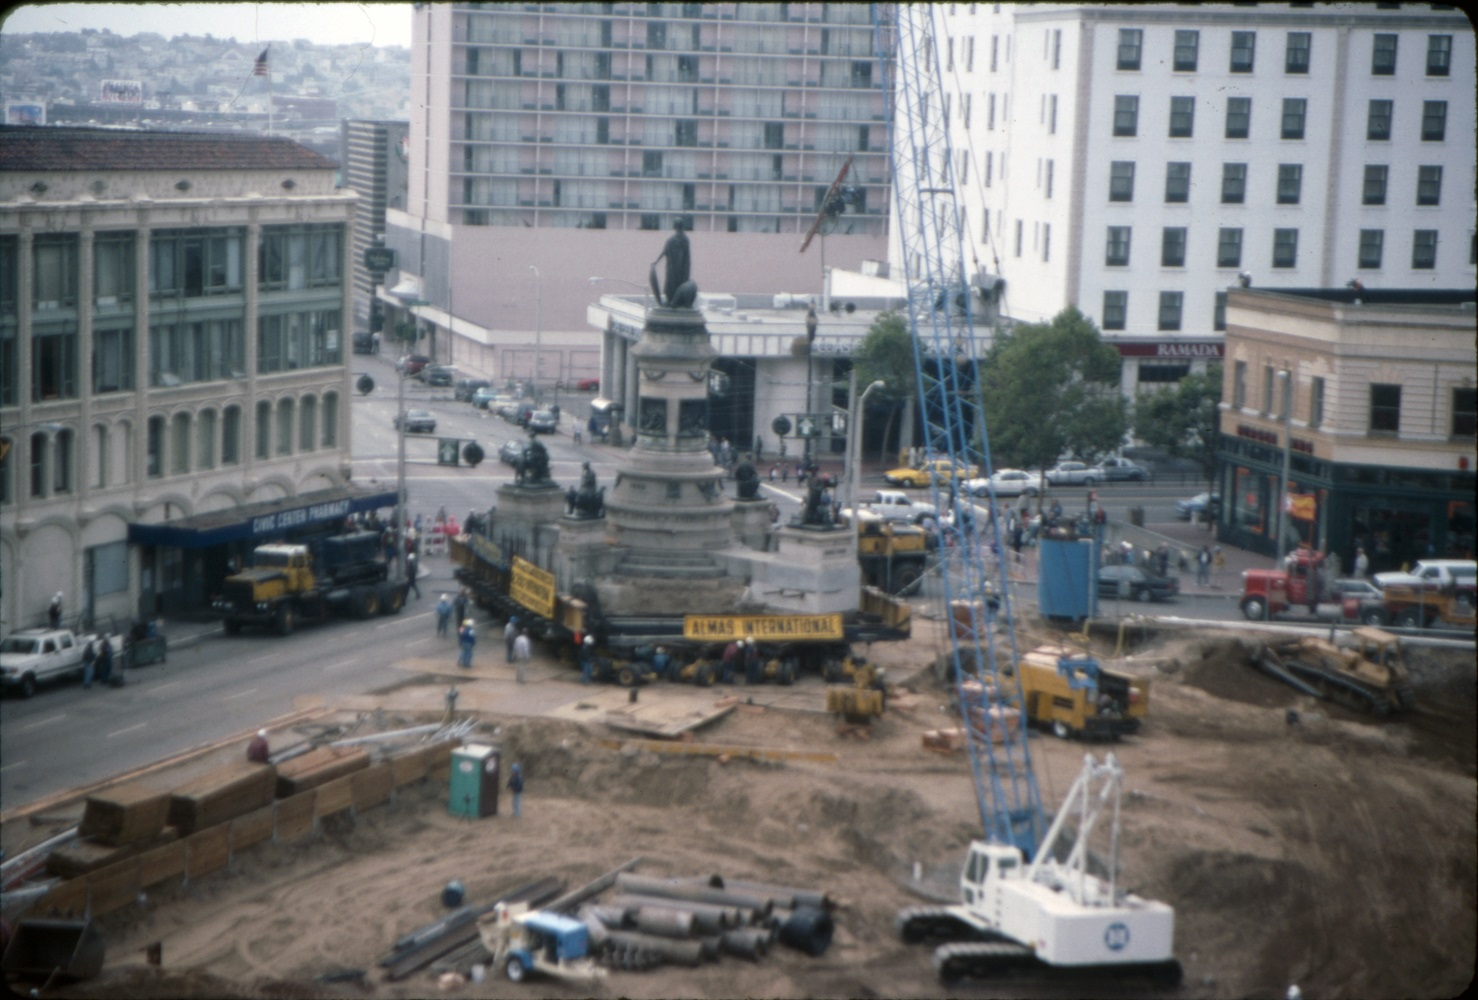 [Moving Pioneer Monument at the site of the new Main Library, Hyde Street and Grove Street]. July 10, 1993. Photo ID #: AAZ-0389. SAN FRANCISCO HISTORY CENTER, SAN FRANCISCO PUBLIC LIBRARY.